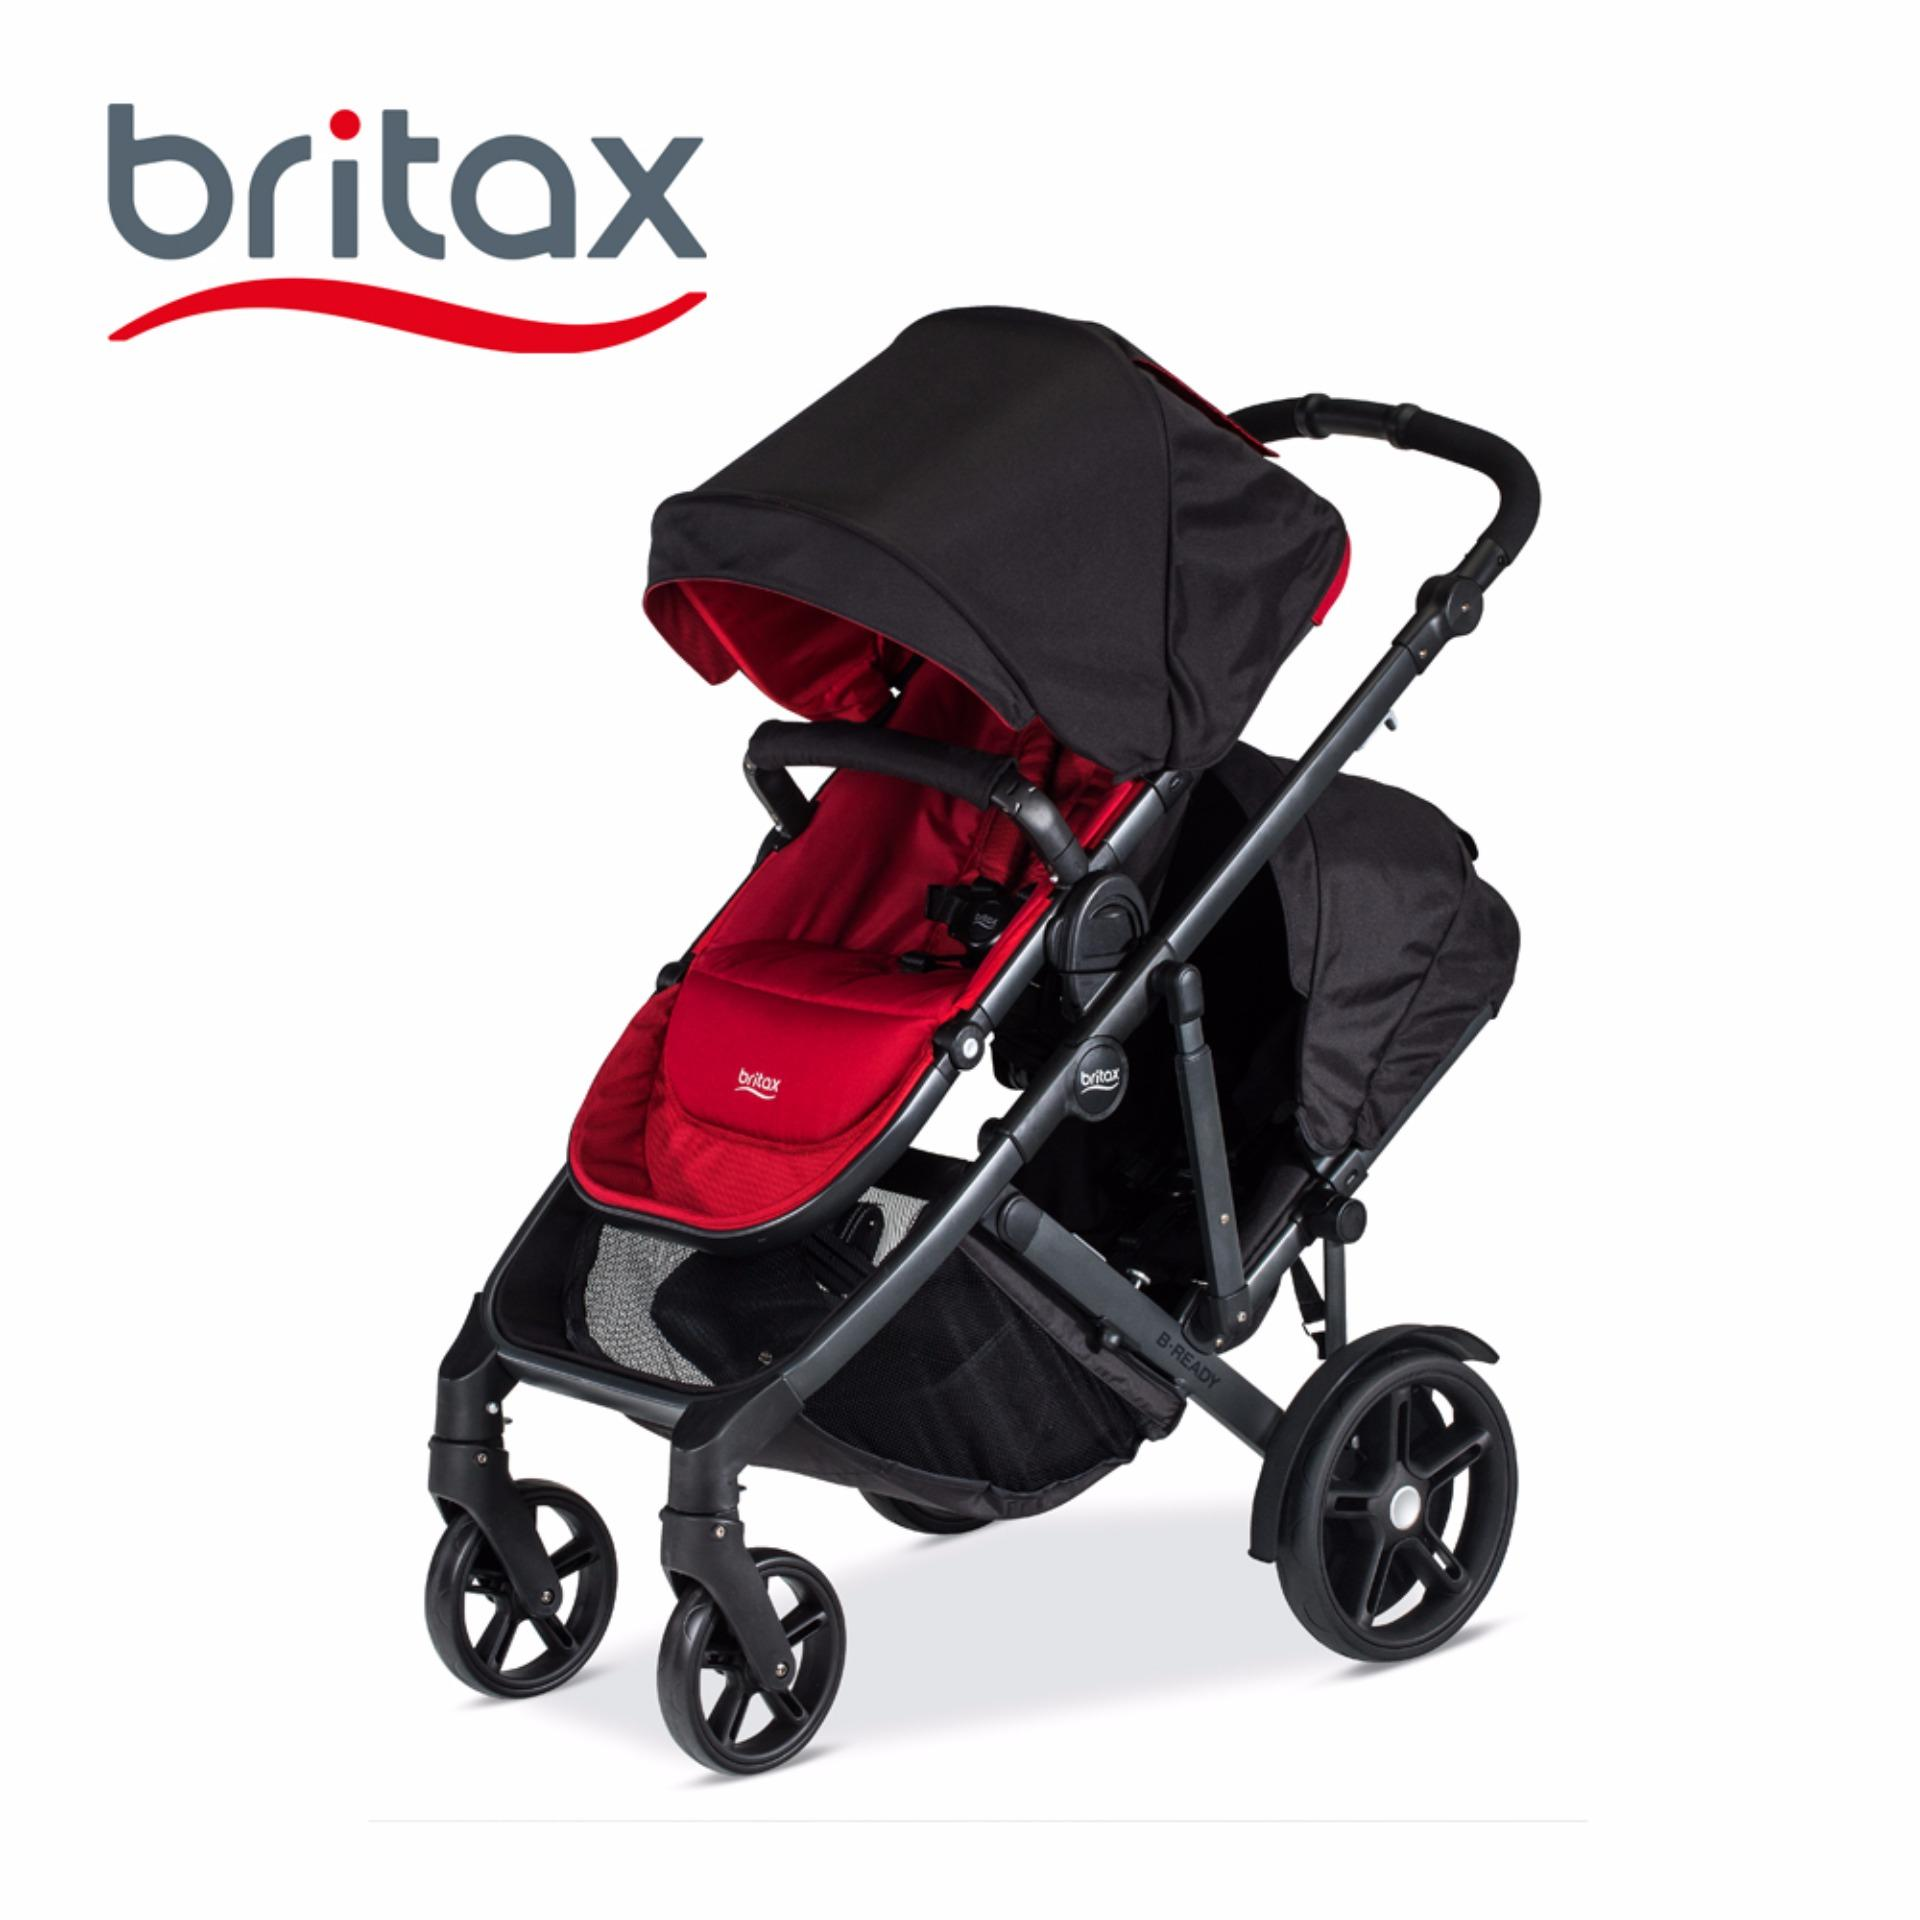 Uno2duo Stroller Latest Graco Britax Doubles Triples Strollers Products